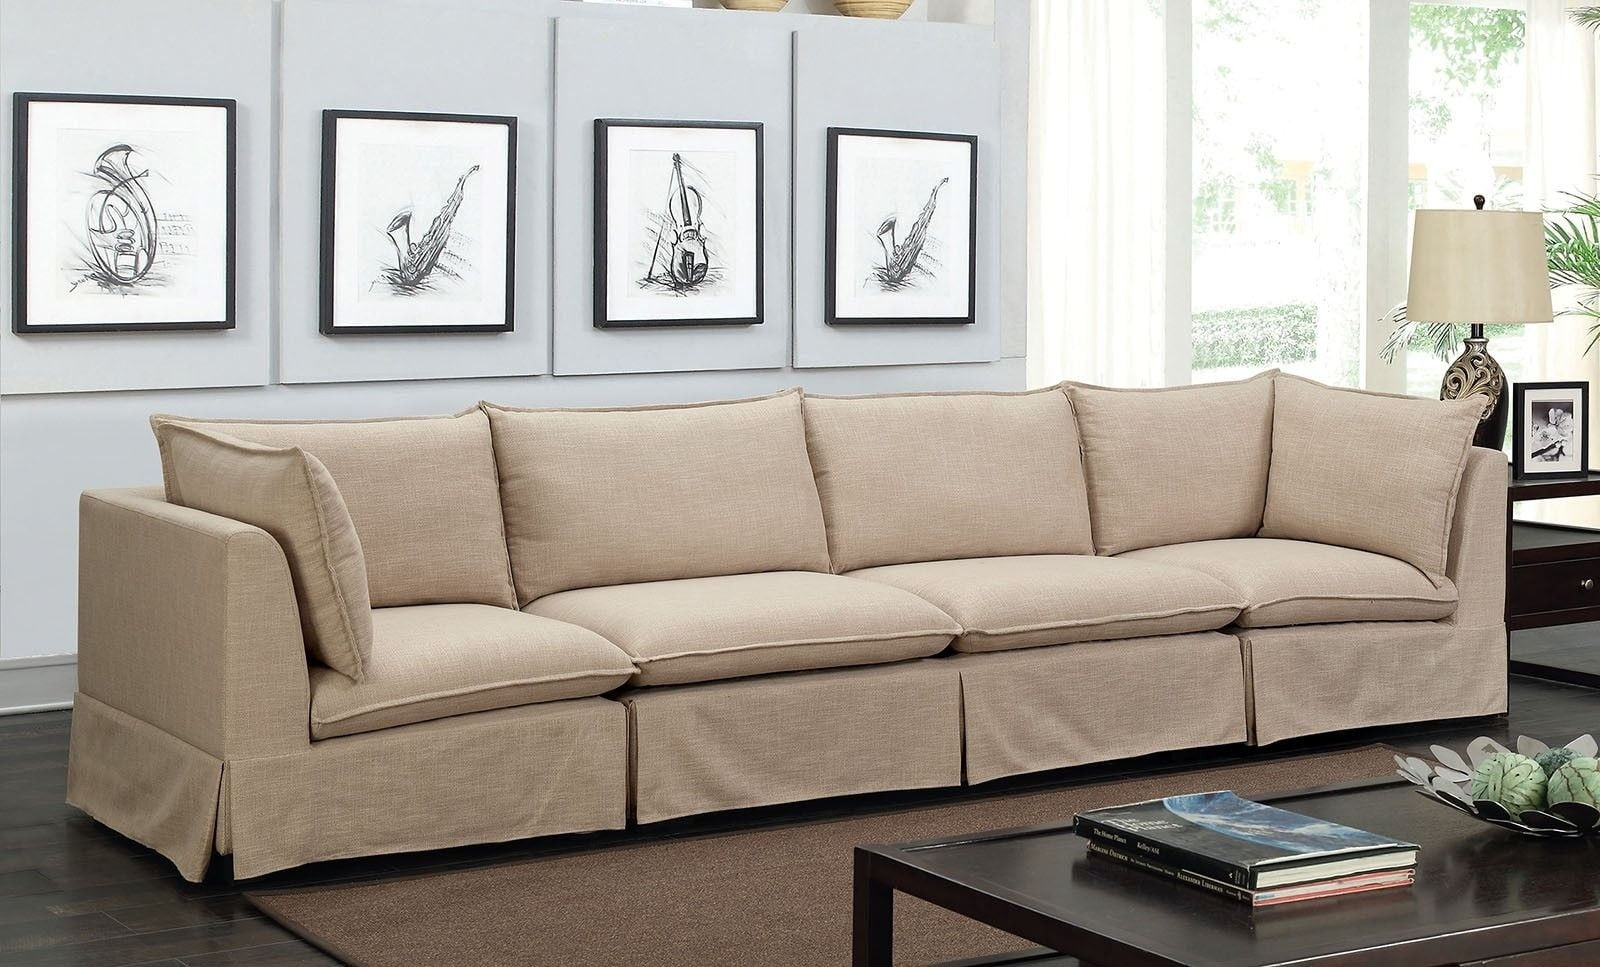 Joelle 3 Piece Beige Sectional From Furniture Of America | Coleman pertaining to Adeline 3 Piece Sectionals (Image 21 of 30)